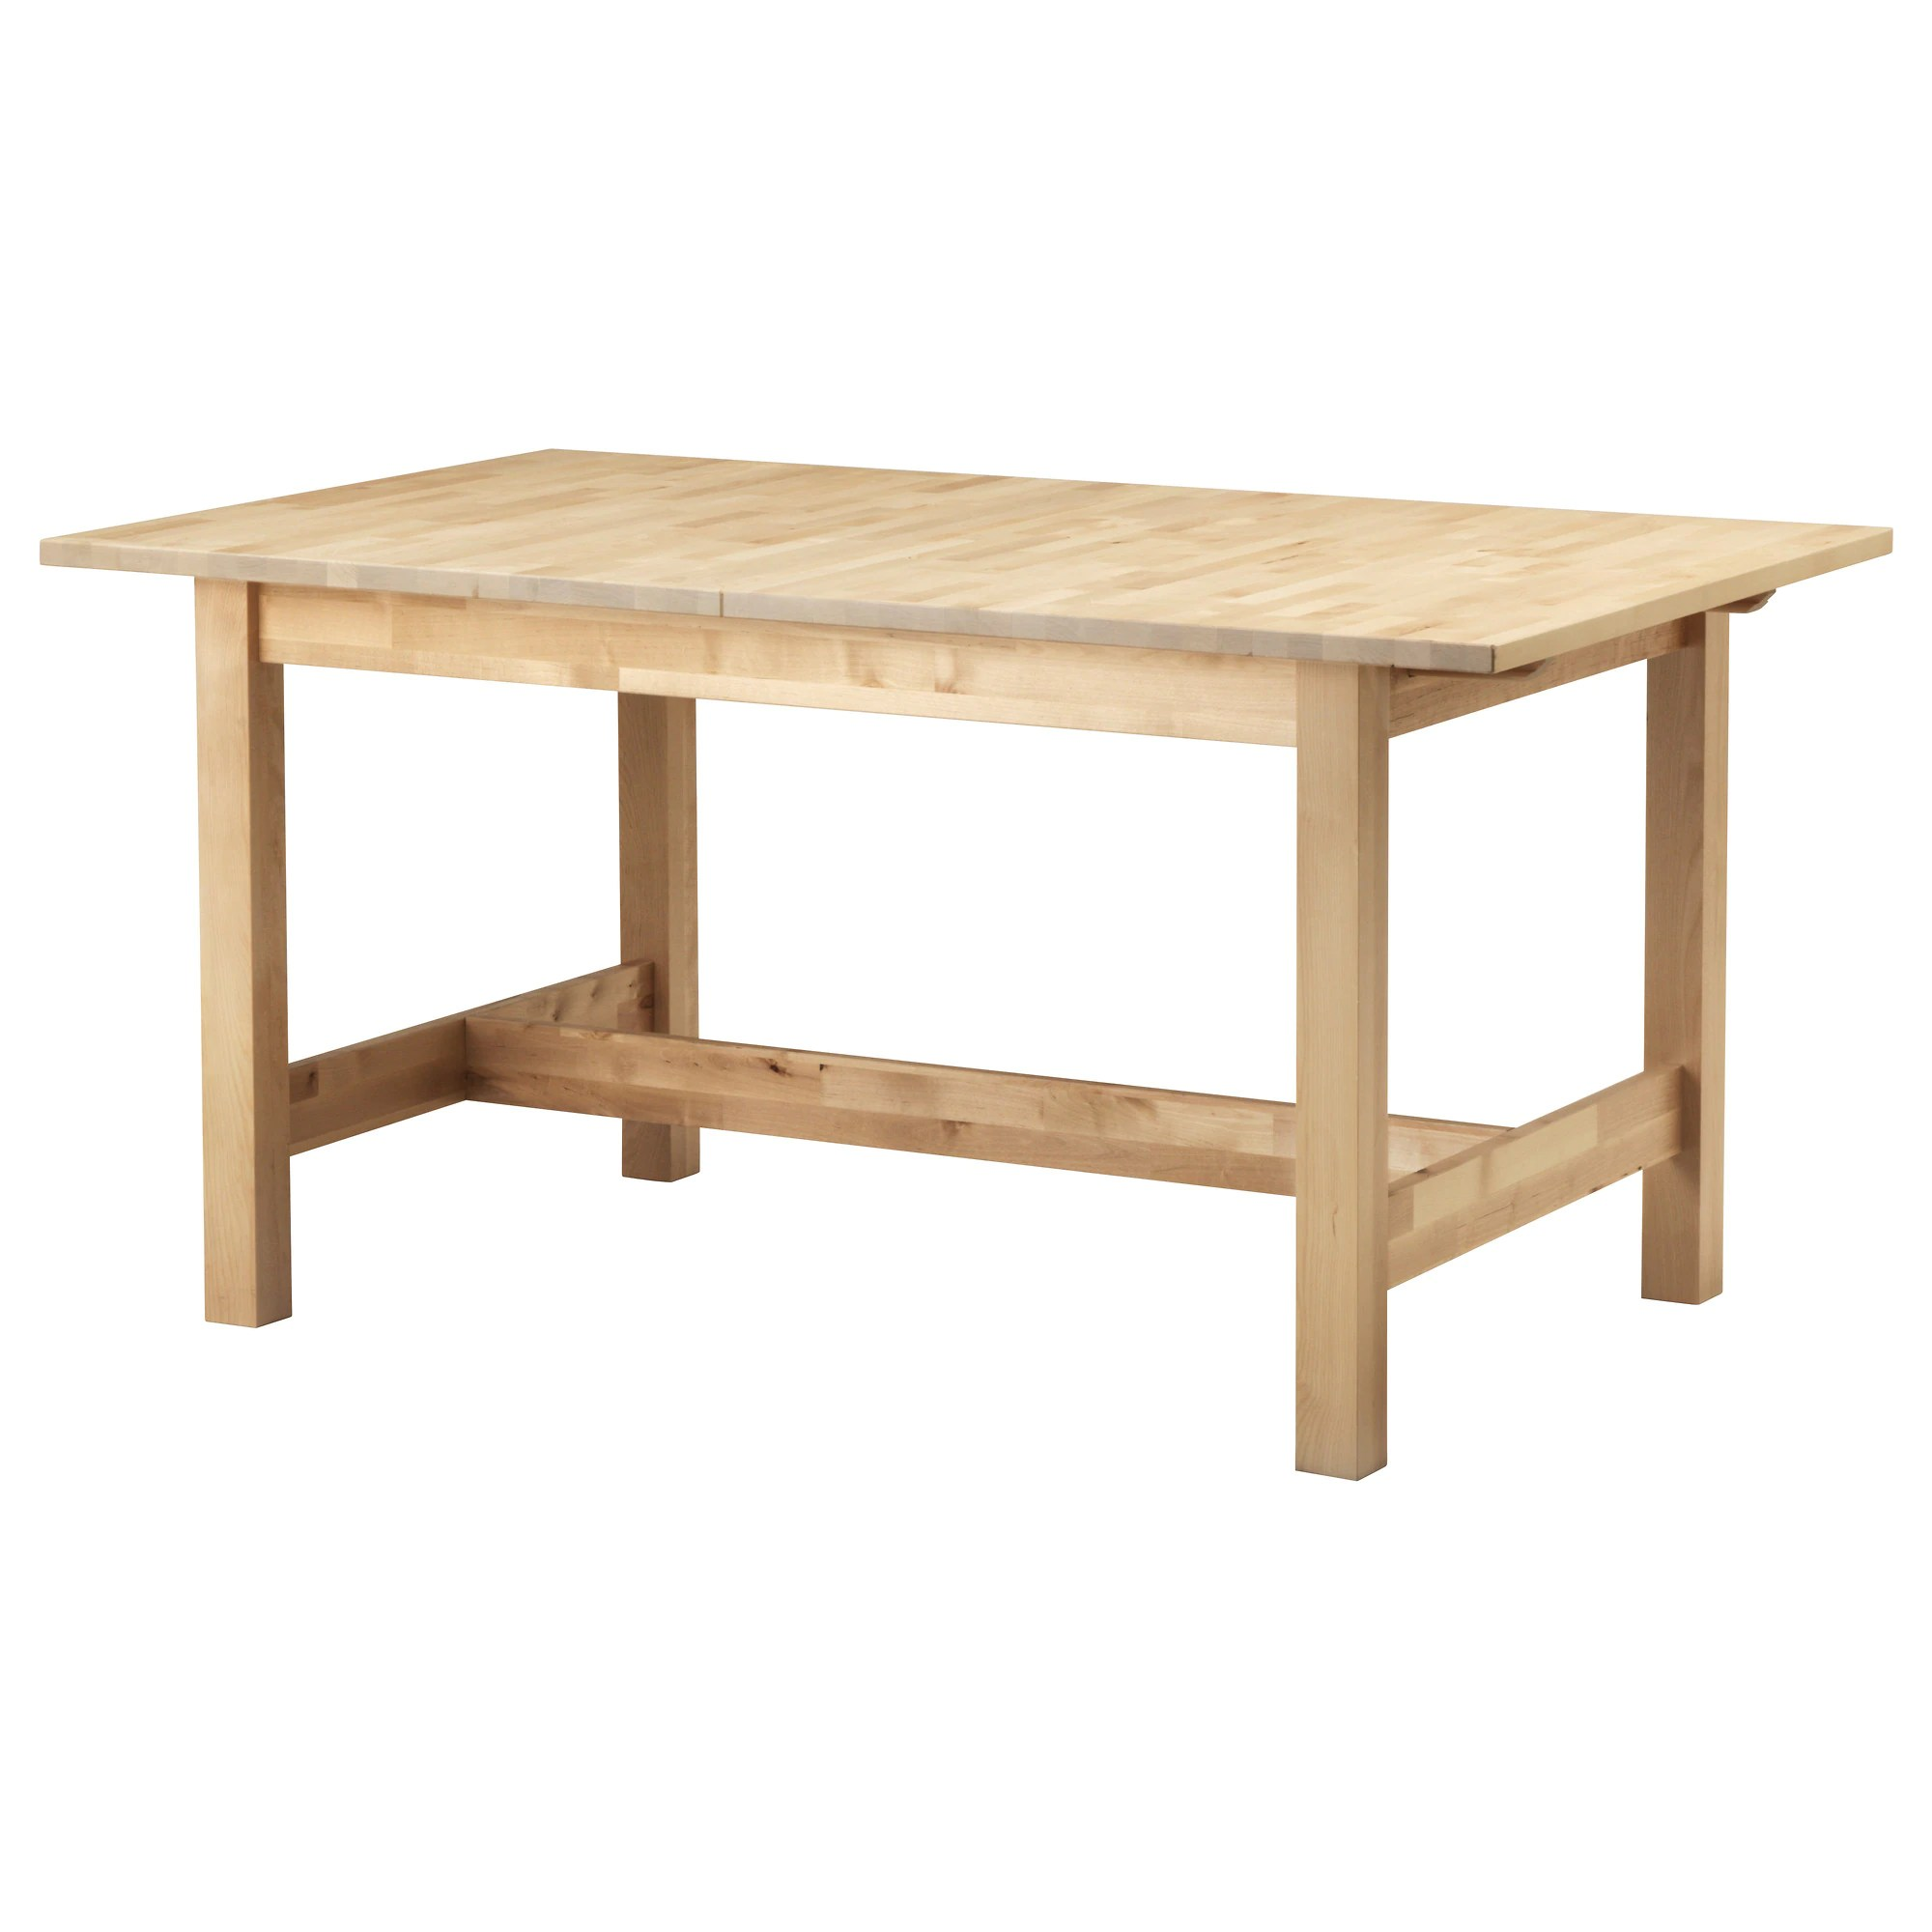 Ikea Table Norden Extendable Table Birch